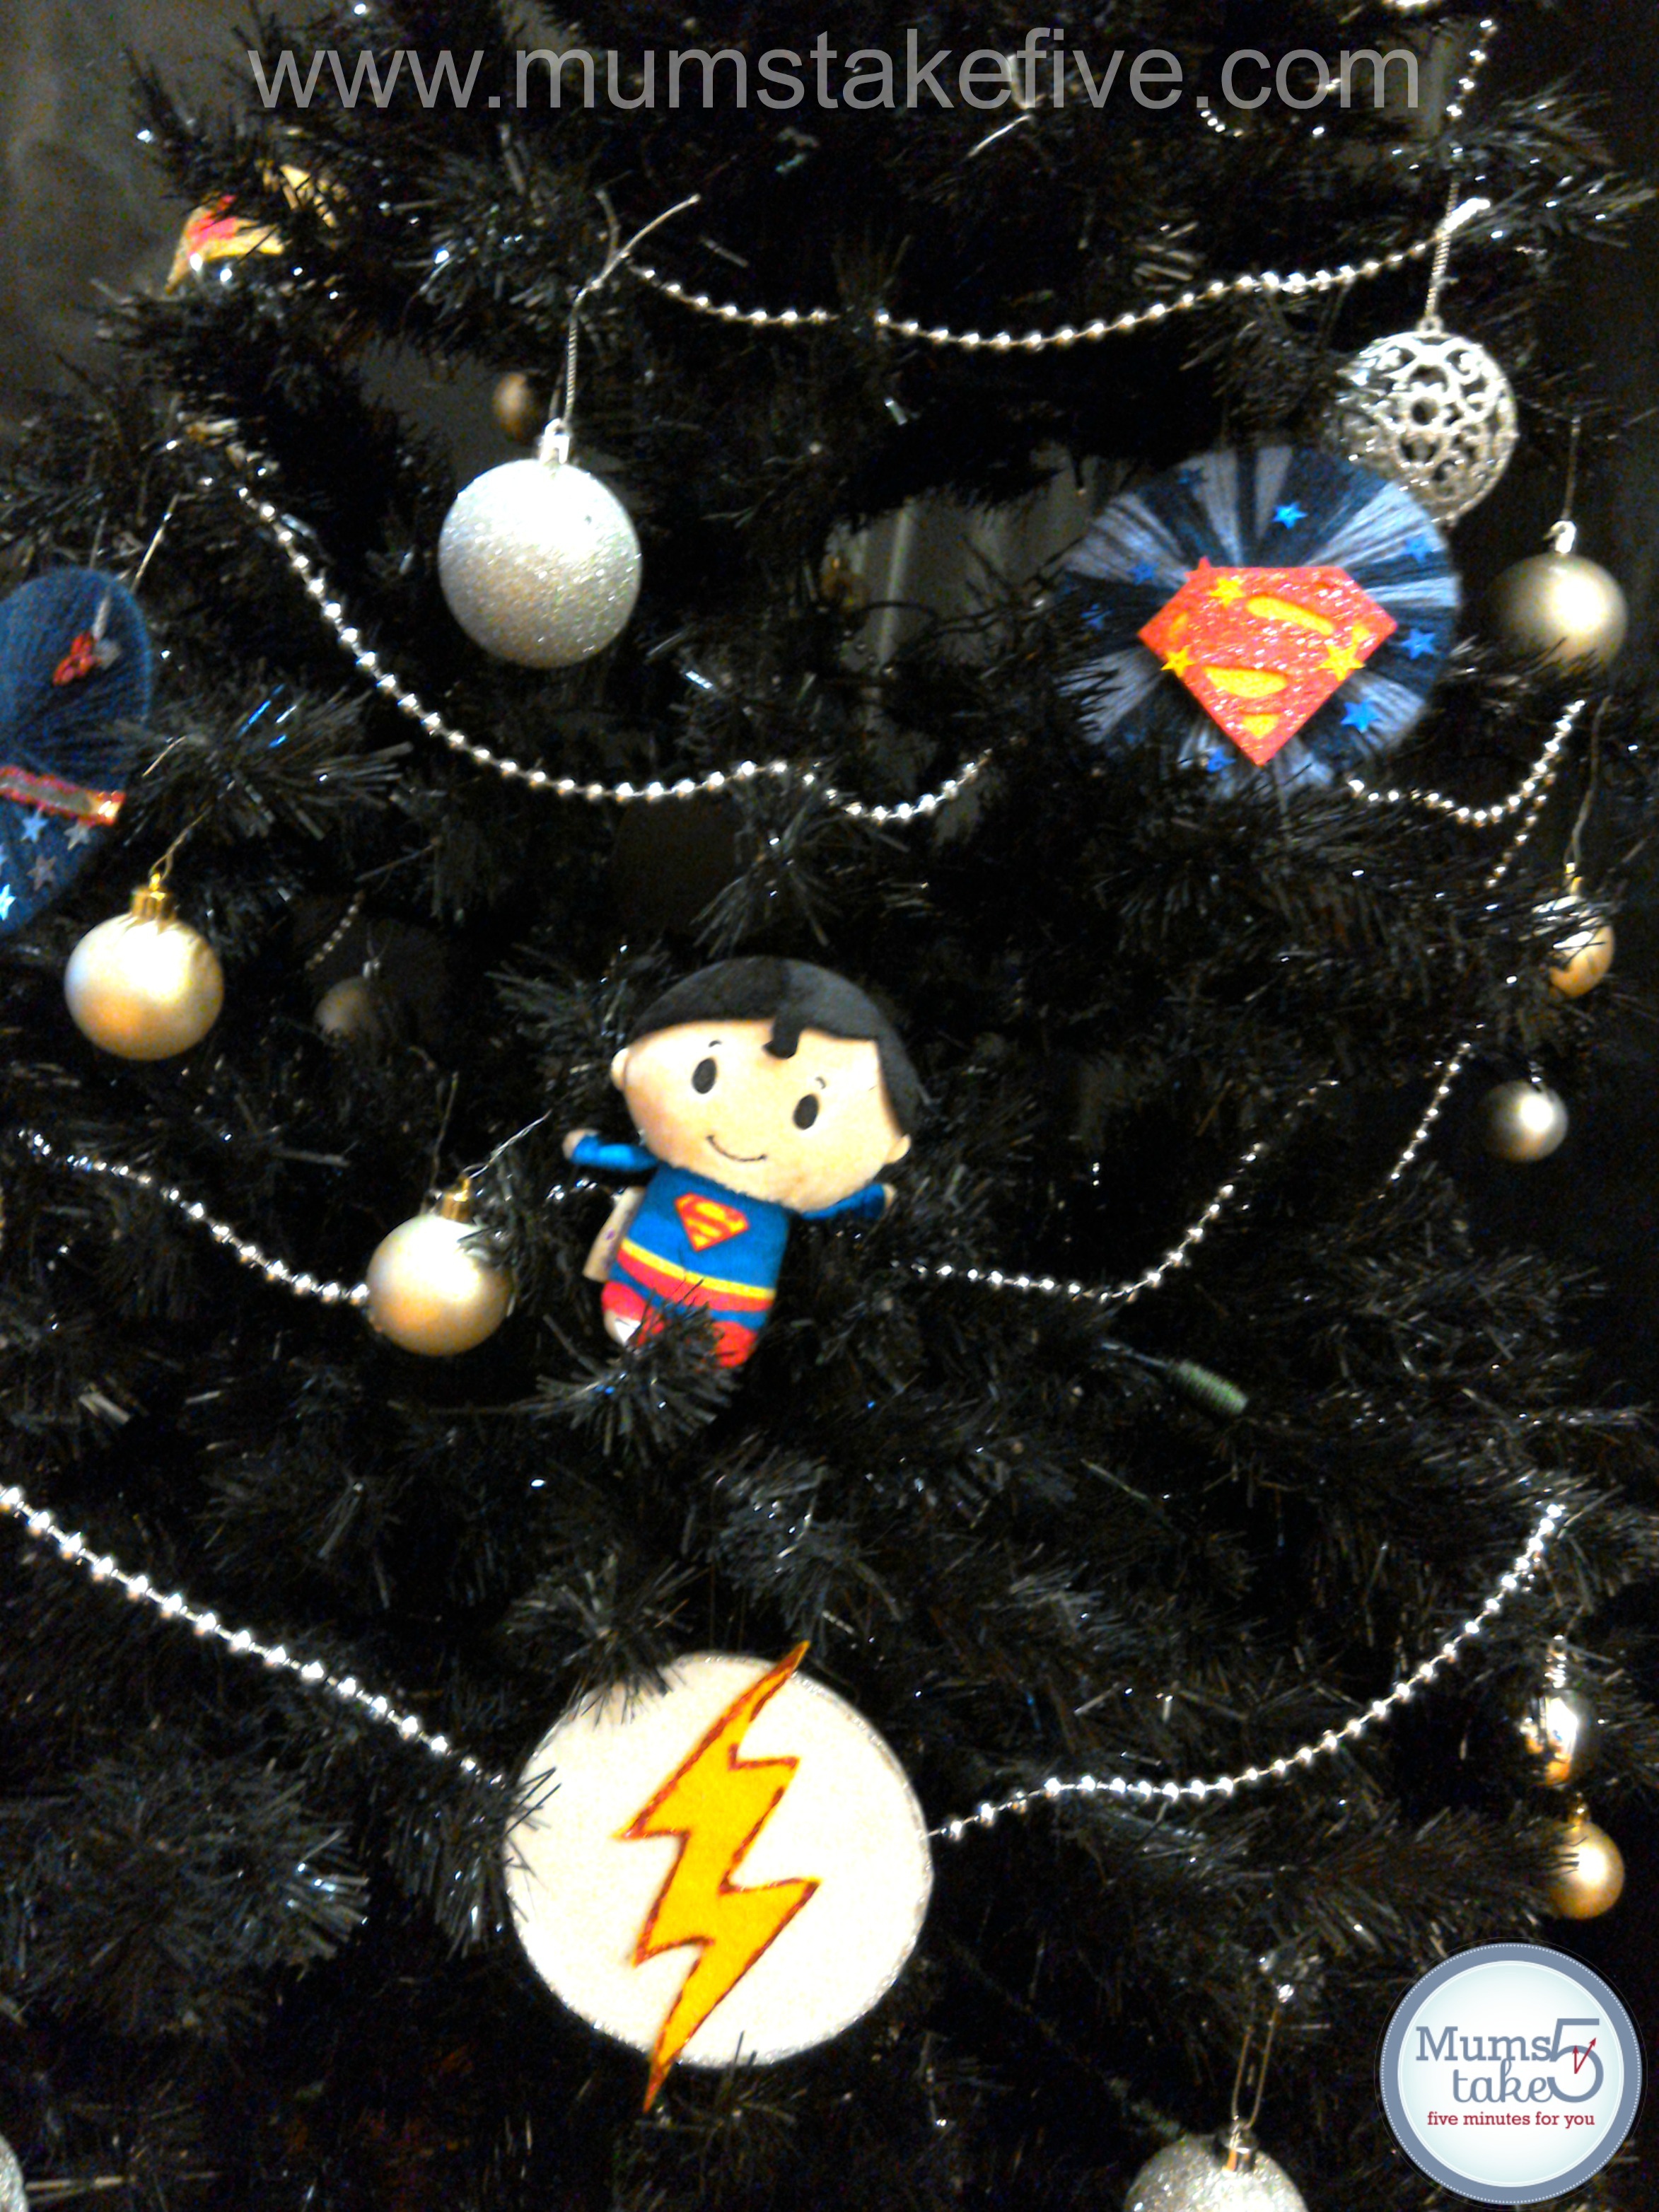 Justice League DC Comics Christmas